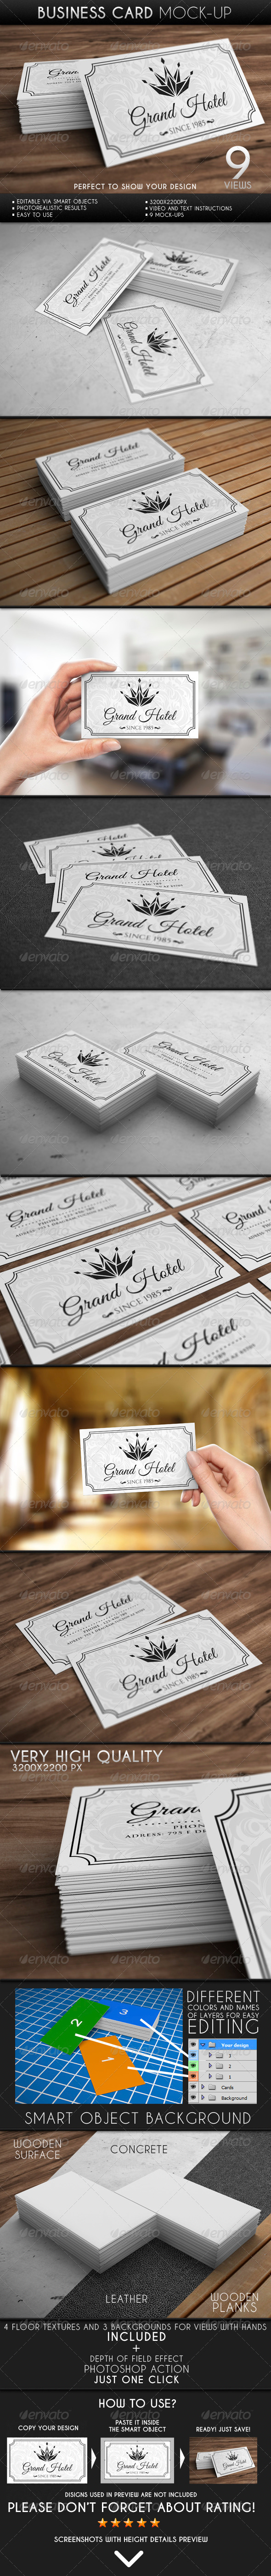 Business Card Mock-Up - Business Cards Print